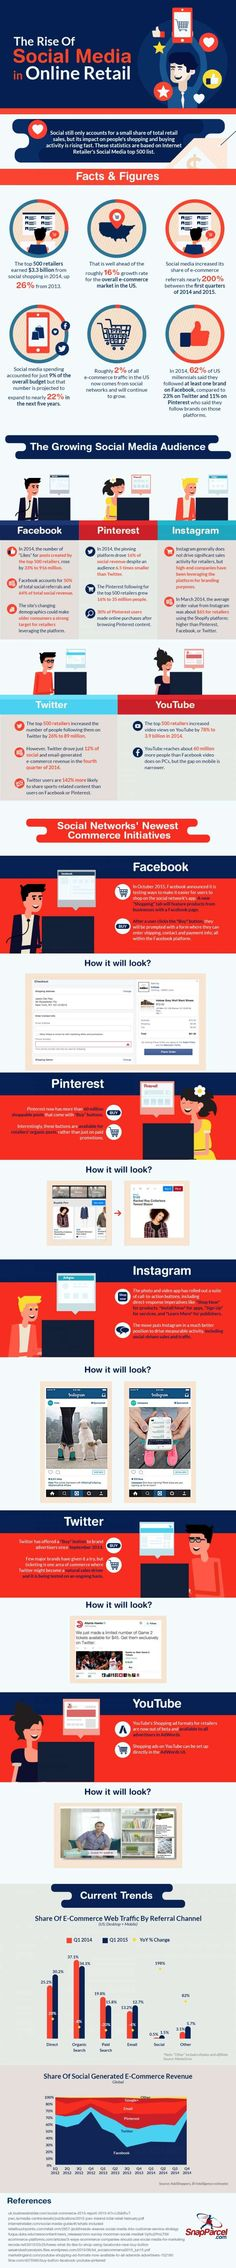 Infographic: The rise of social media in eCommerce